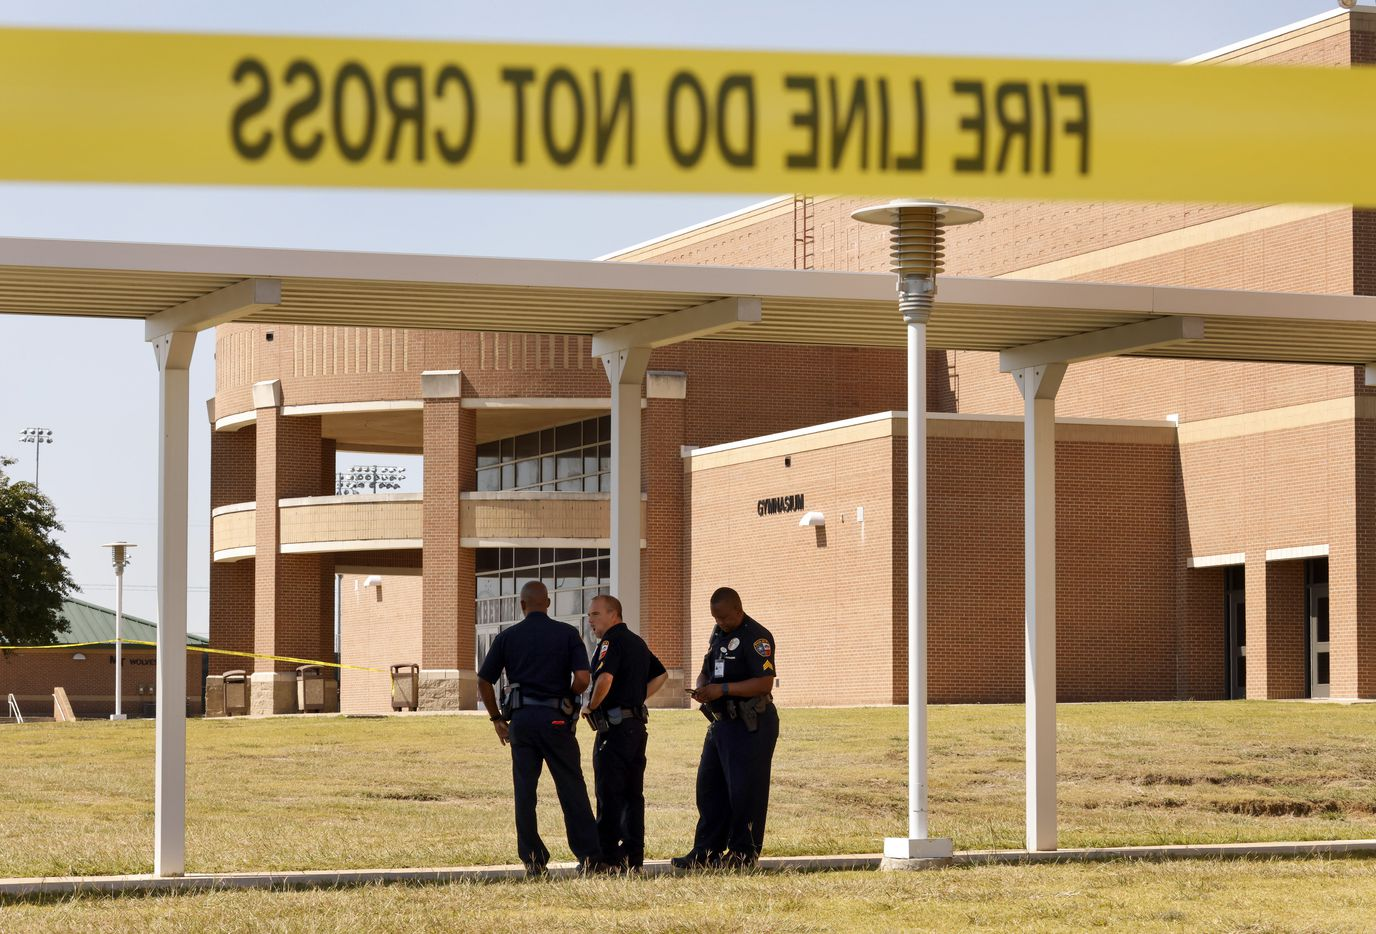 Mansfield ISD police officers secure the door where most of the activity took place following a shooting inside Mansfield Timberview High School in Arlington, Texas, Wednesday, October 6, 2021. Four people were injured in the shooting and the suspect turned himself into the Arlington police. (Tom Fox/The Dallas Morning News)